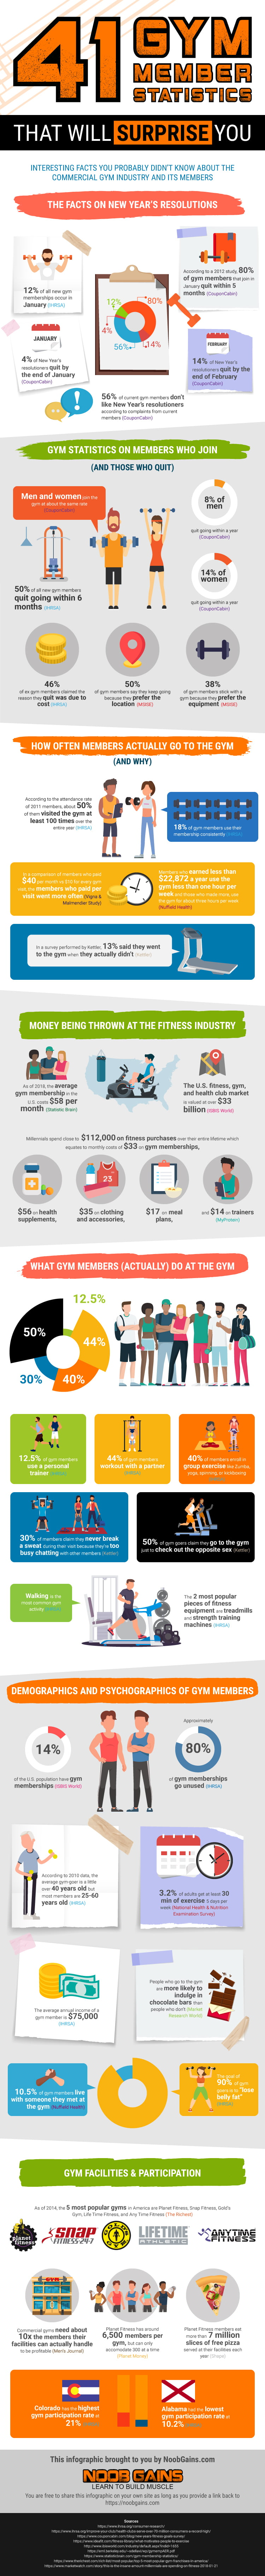 41 Gym Member Statistics That Will Surprise You